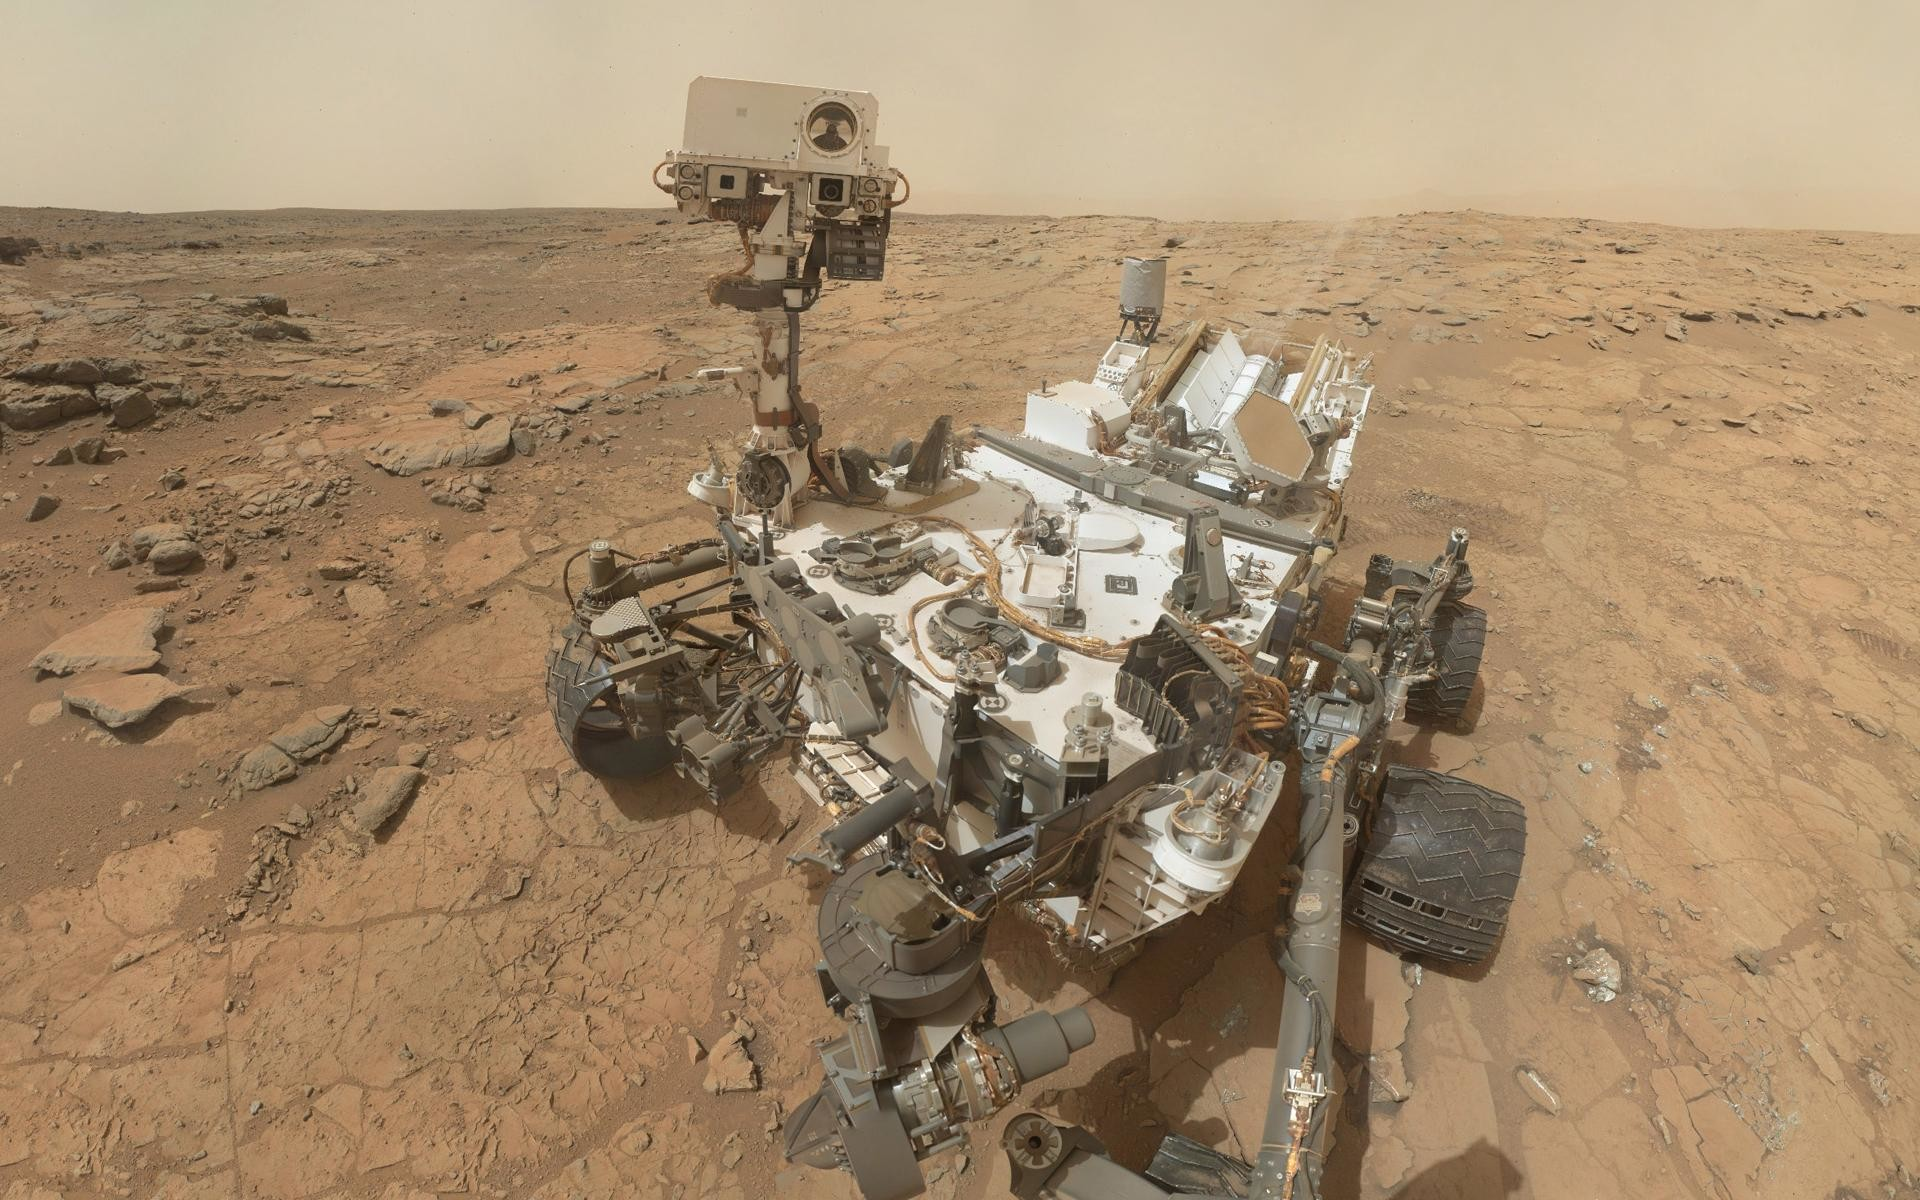 Mars Rover Wallpaper 60 images 1920x1200